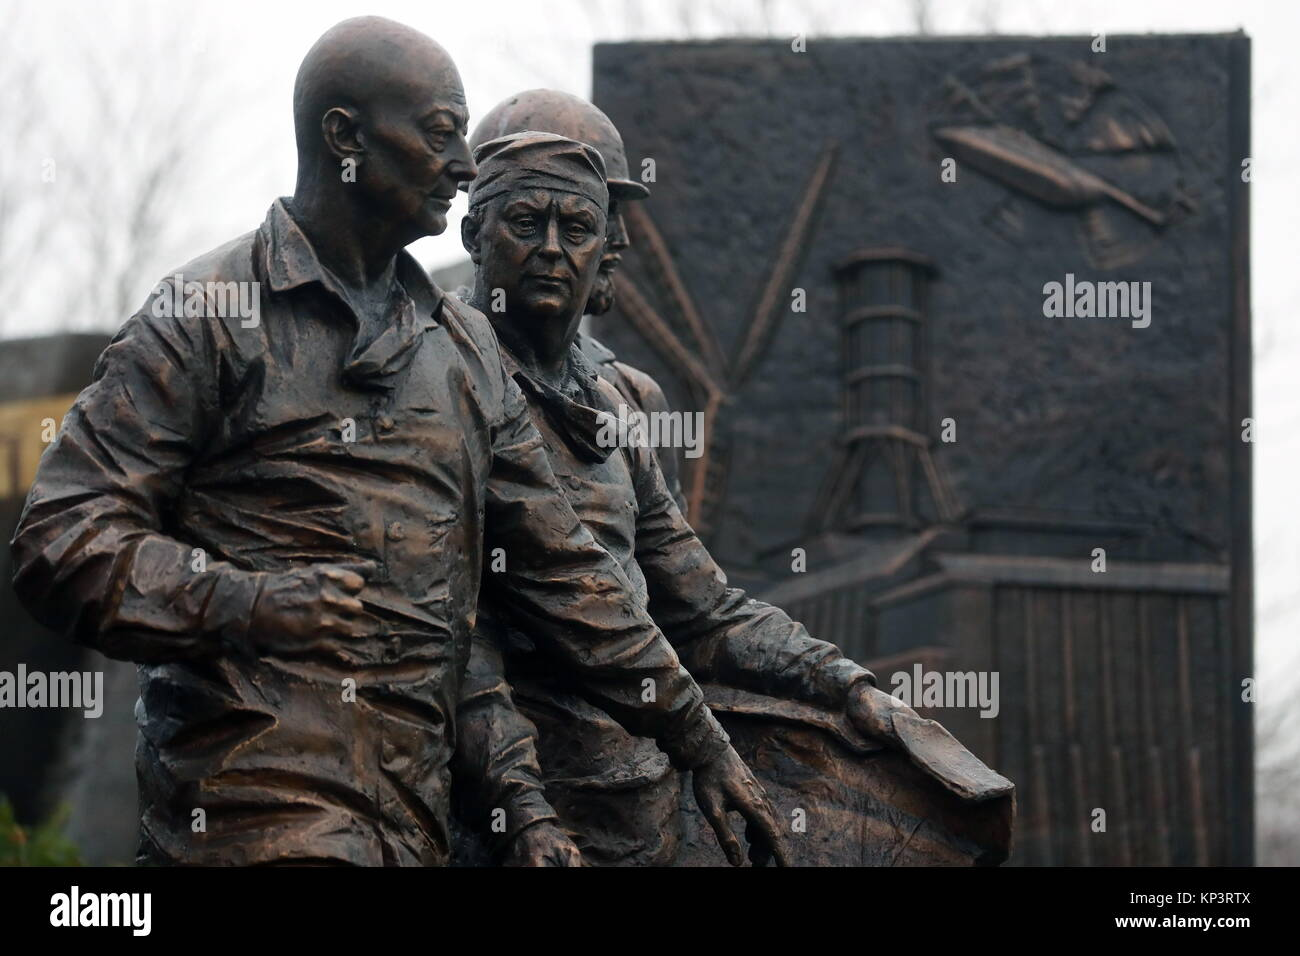 Moscow, Russia. 13th Dec, 2017. A monument to 'Chernobyl liquidators', people who took part in clean-up - Stock Image